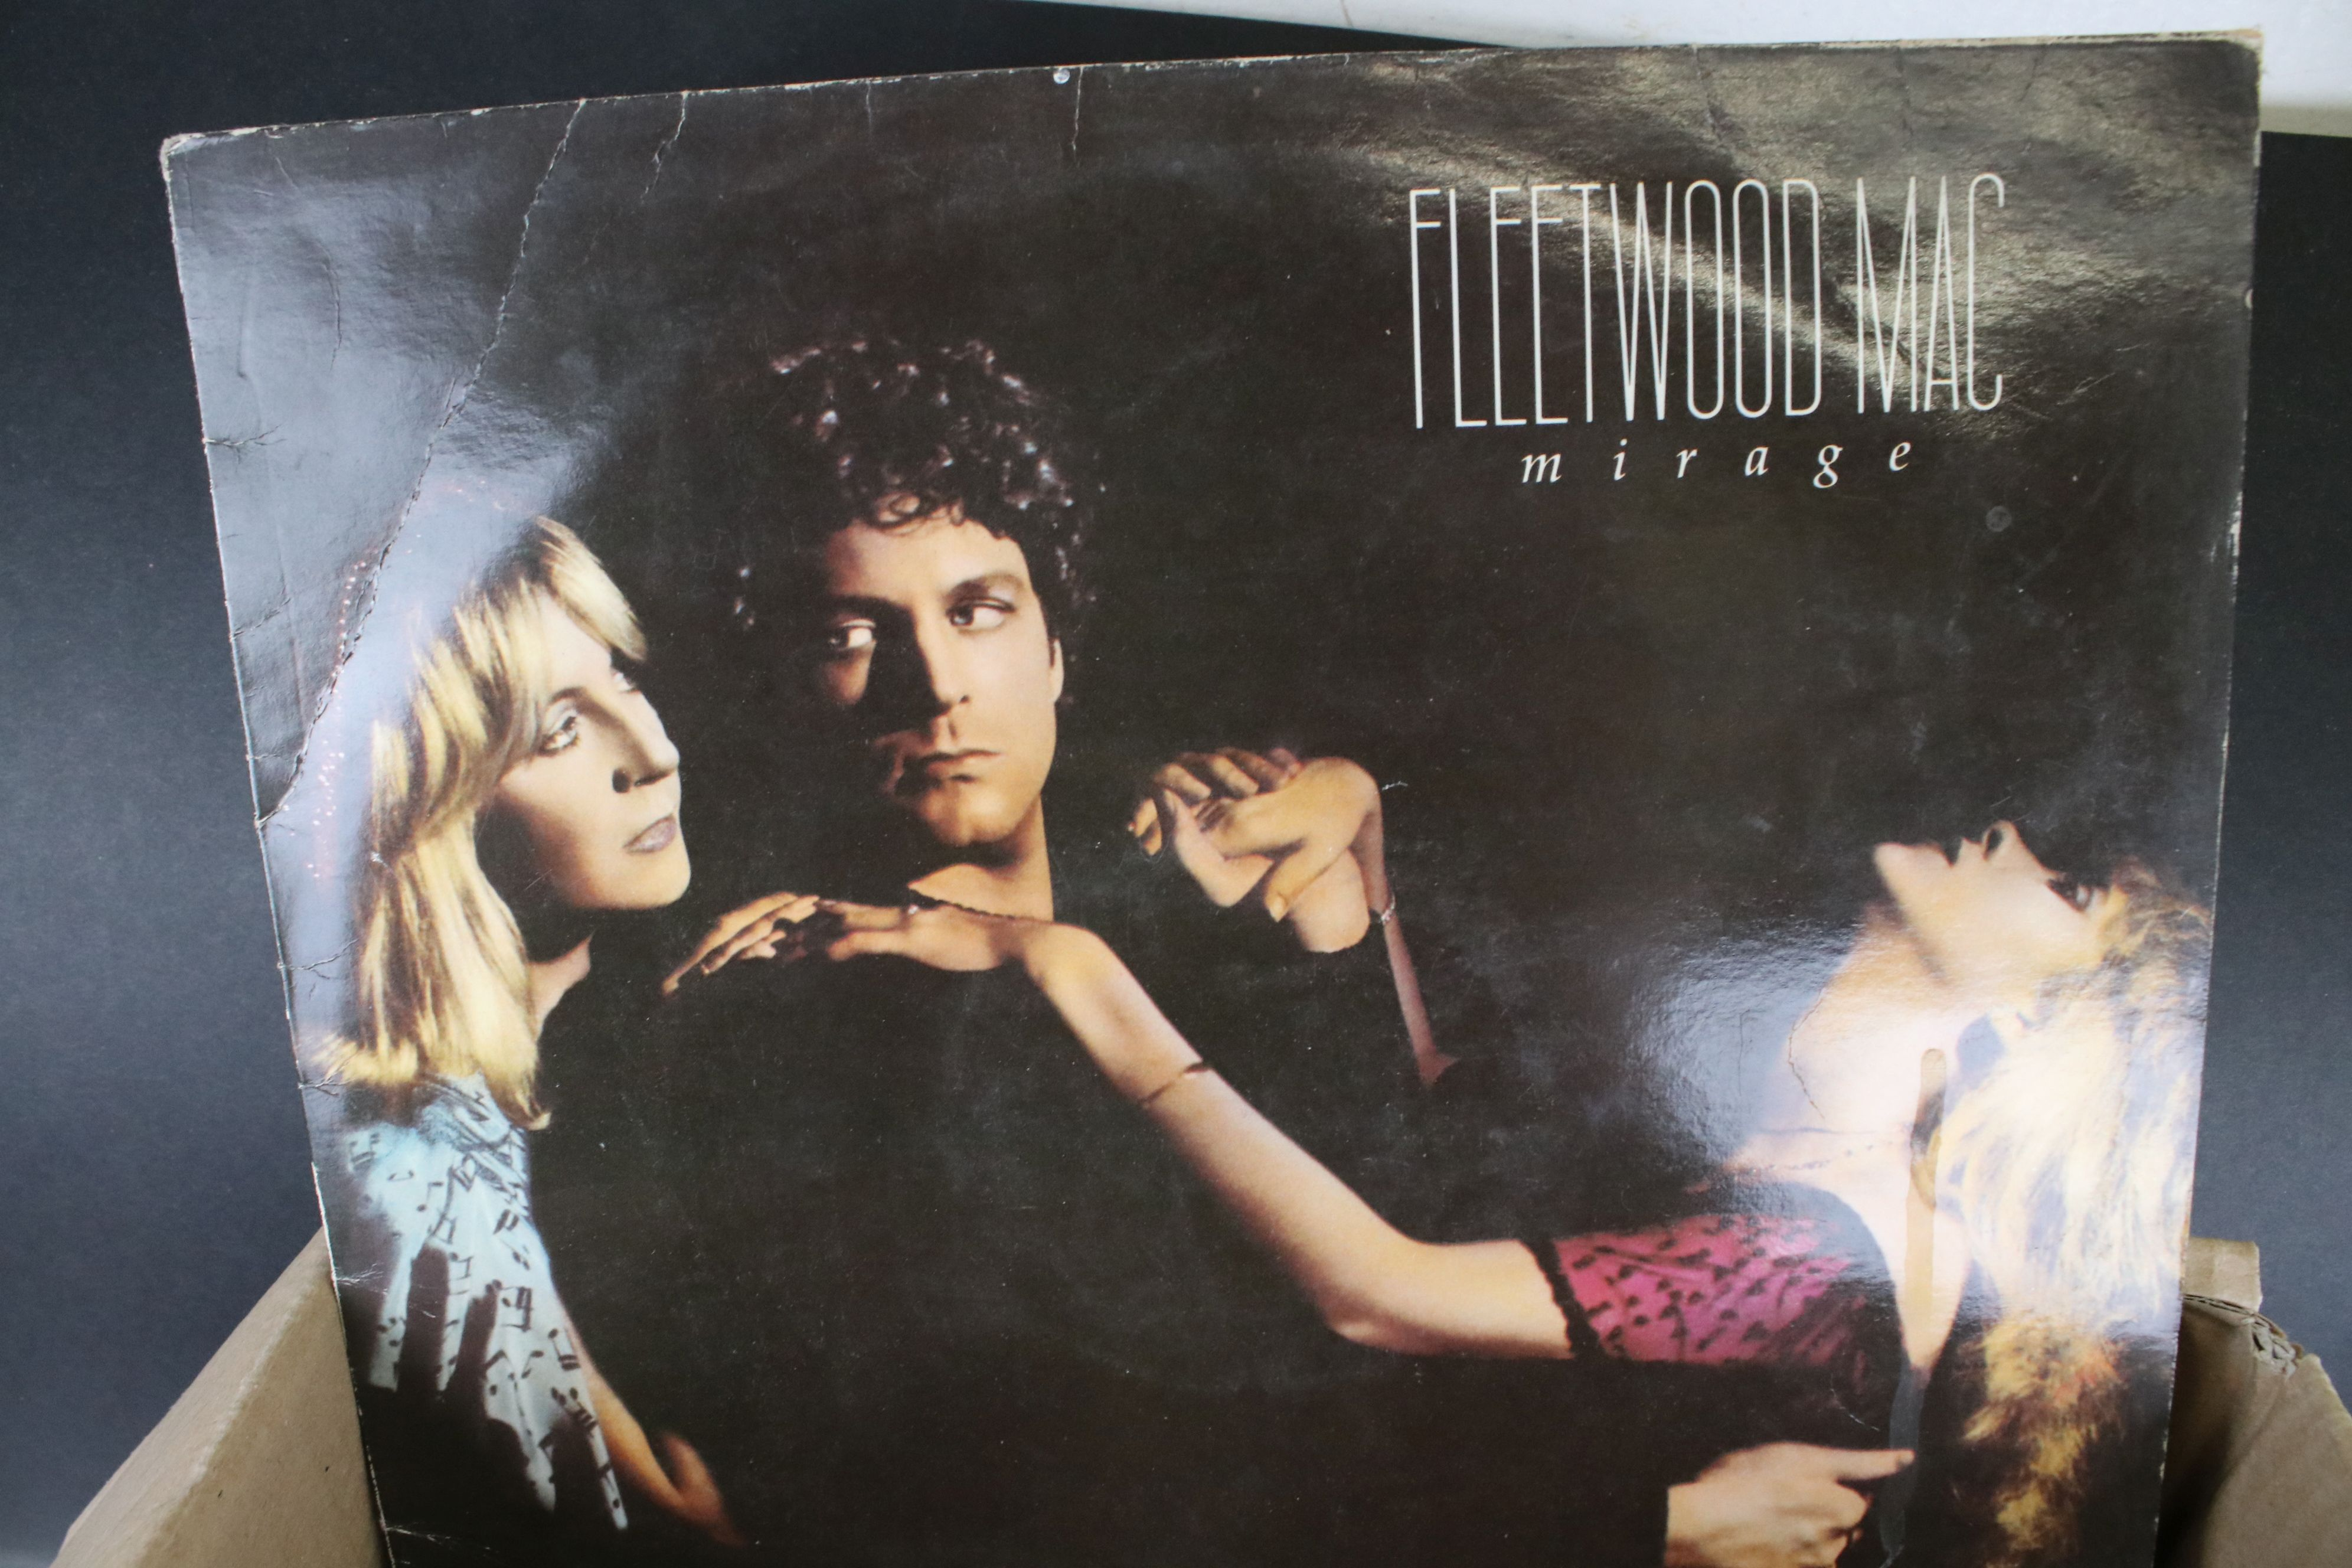 Vinyl - Rock & Pop collection of approx 45 LP's featuring Cat Stevens, Bad Company, Fleetwood Mac, - Image 10 of 10